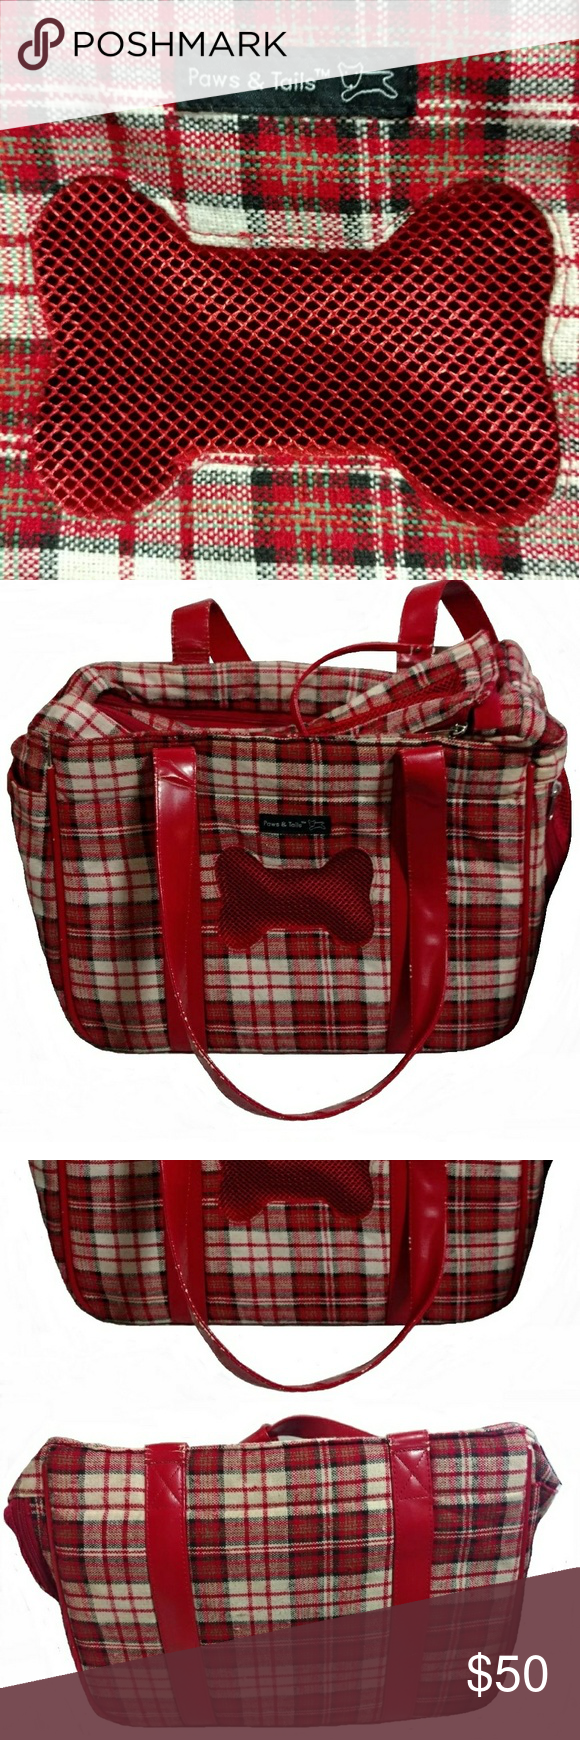 Pet carrier tote shoulder bag cute red u white plaid carrier has